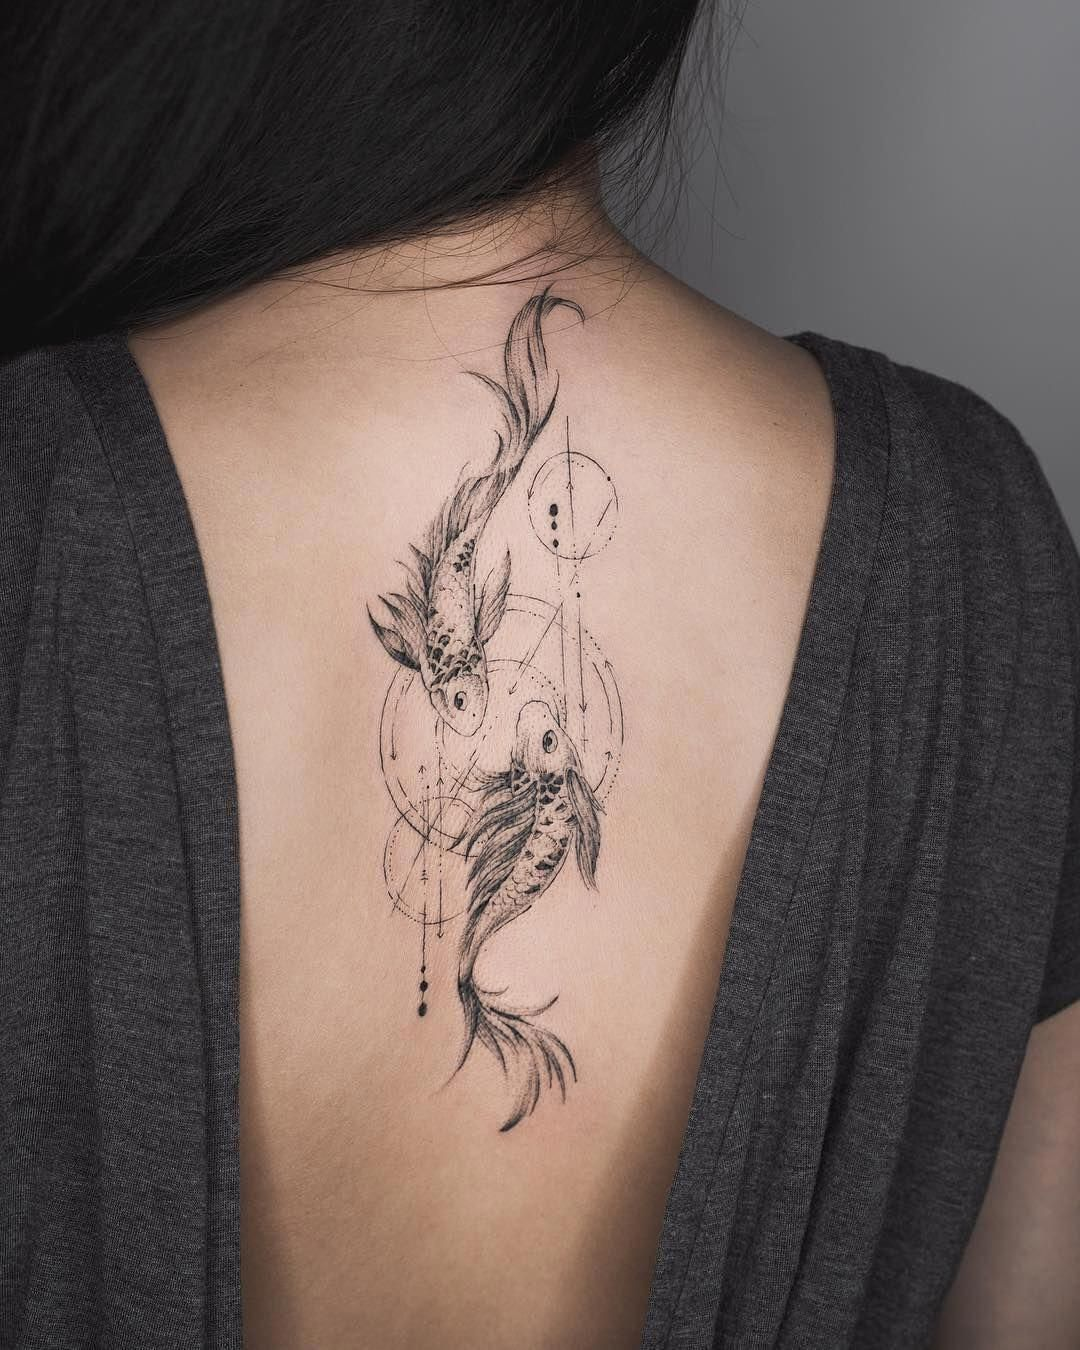 Pisces Tattoo Neck Tattoo Tattoos Tattoos For Women